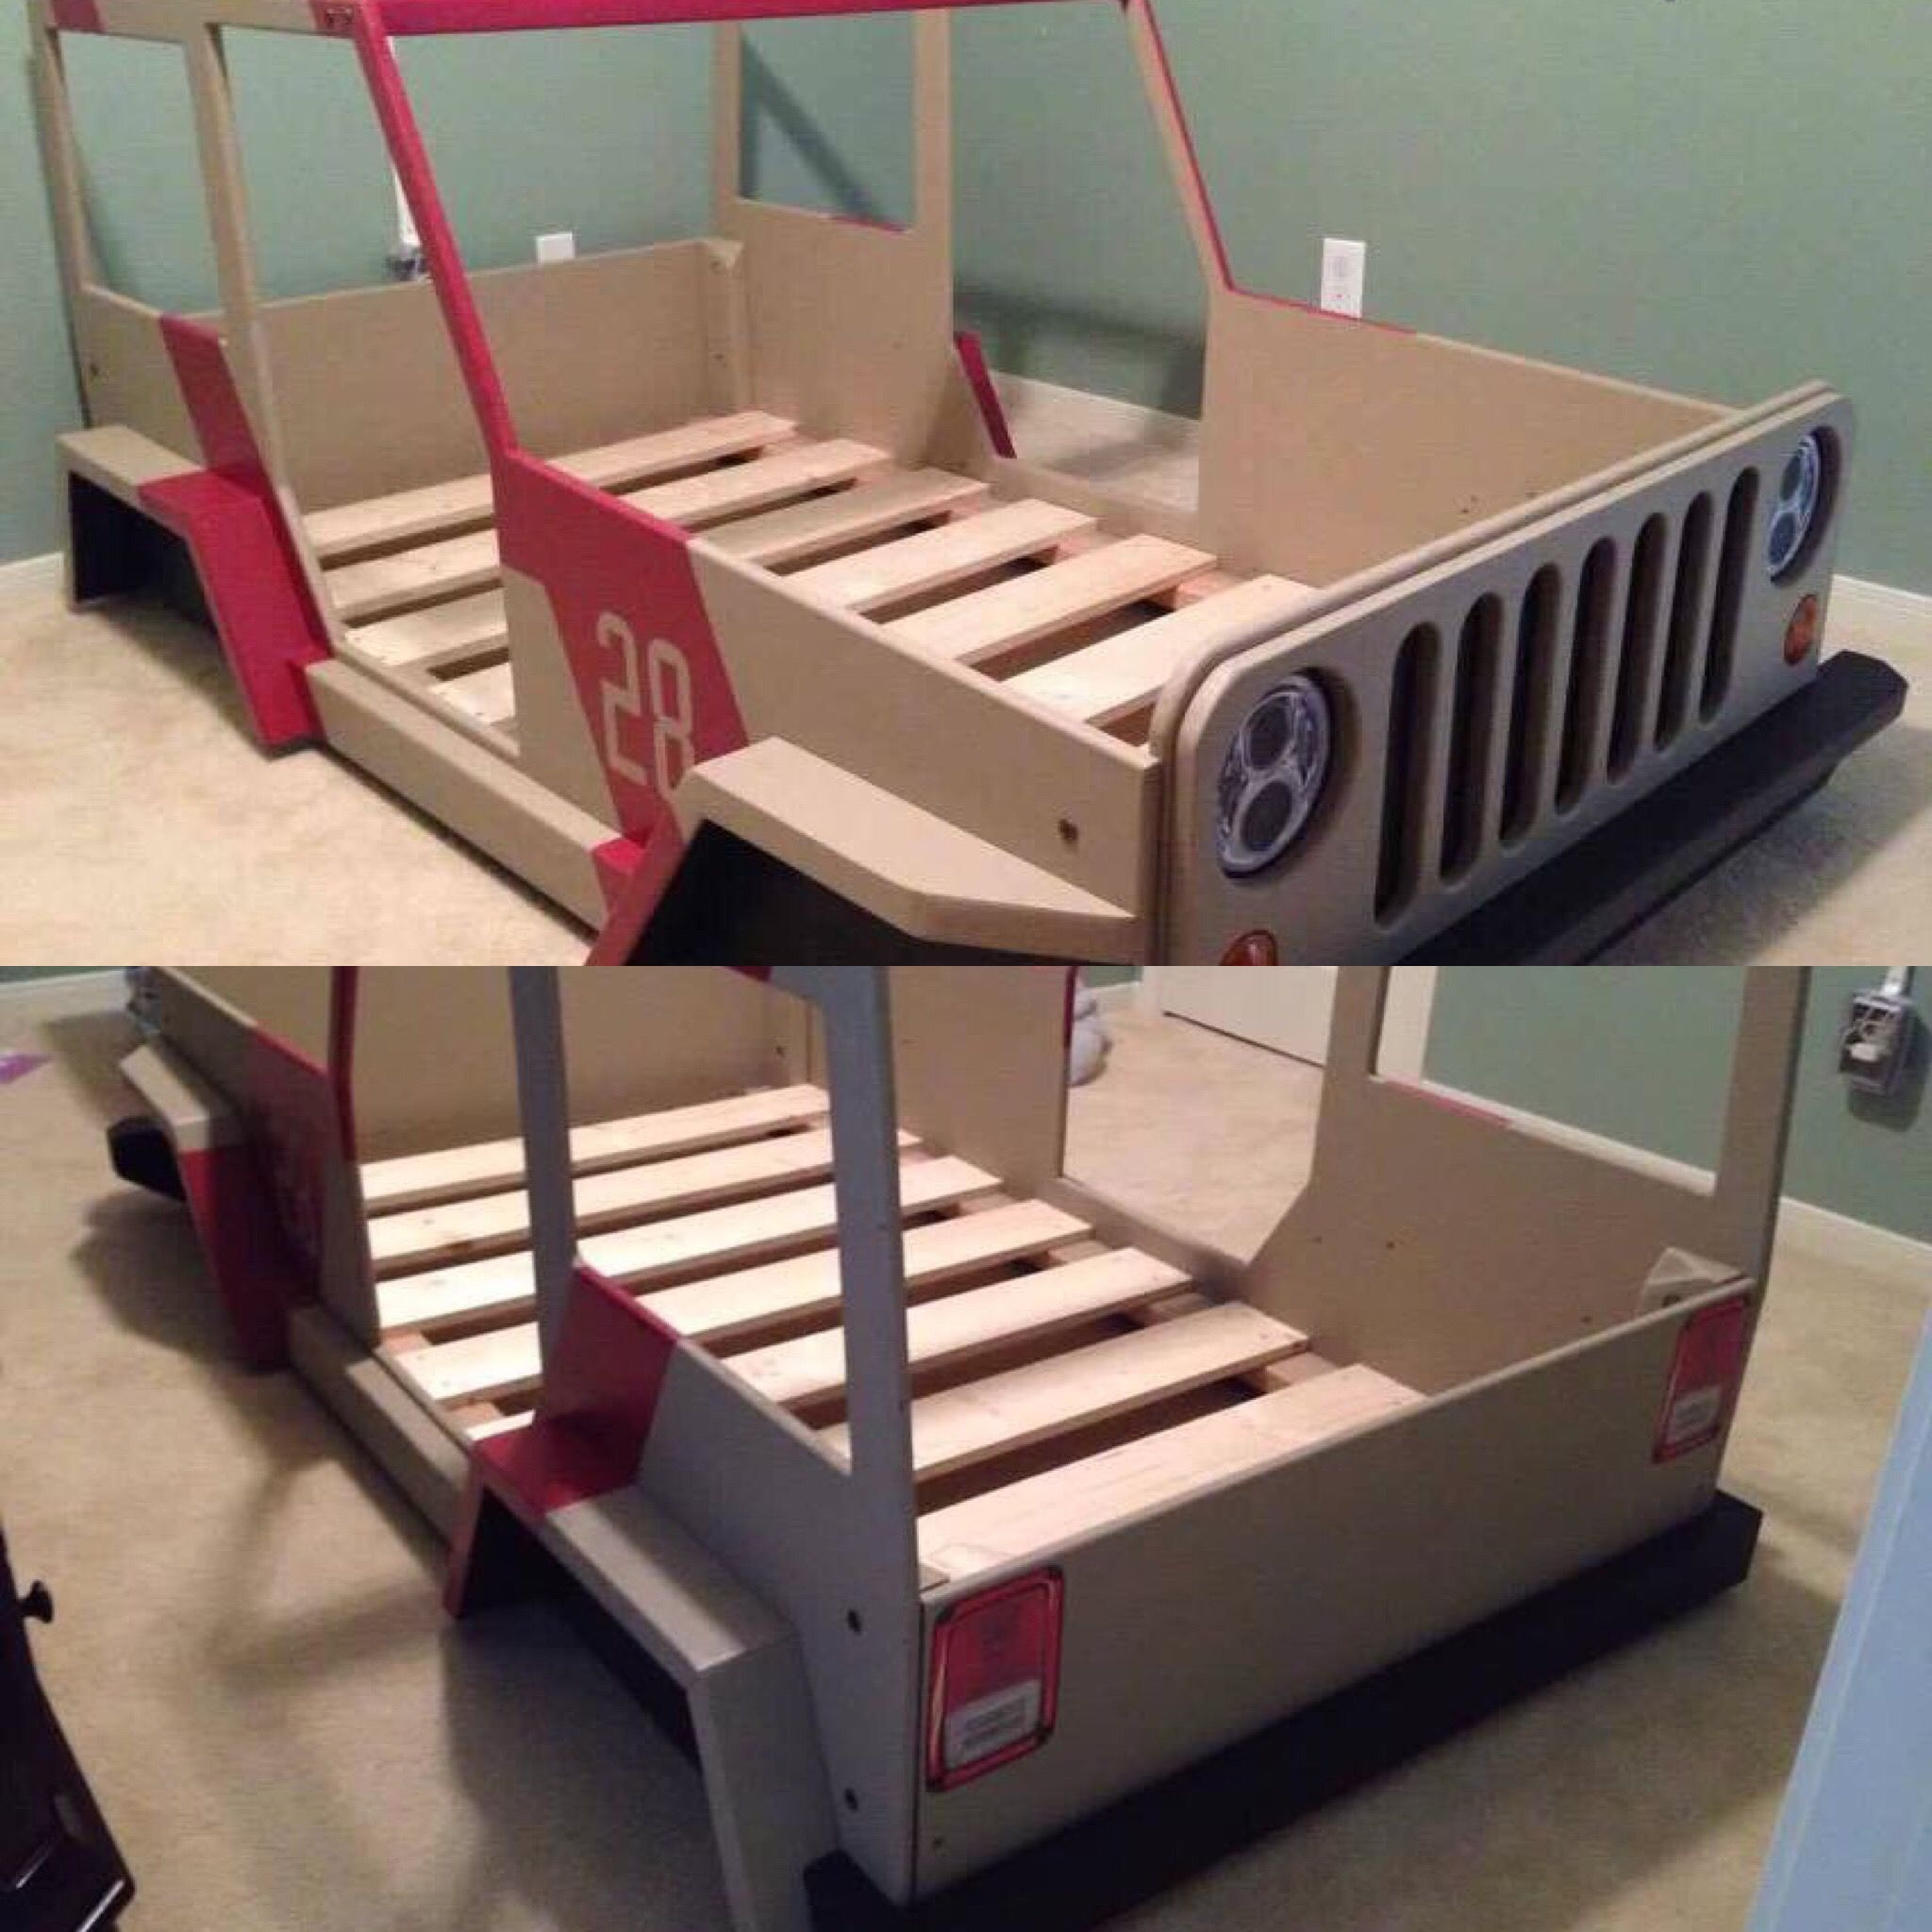 Jeep bed plan | Kid beds, Toddler car bed